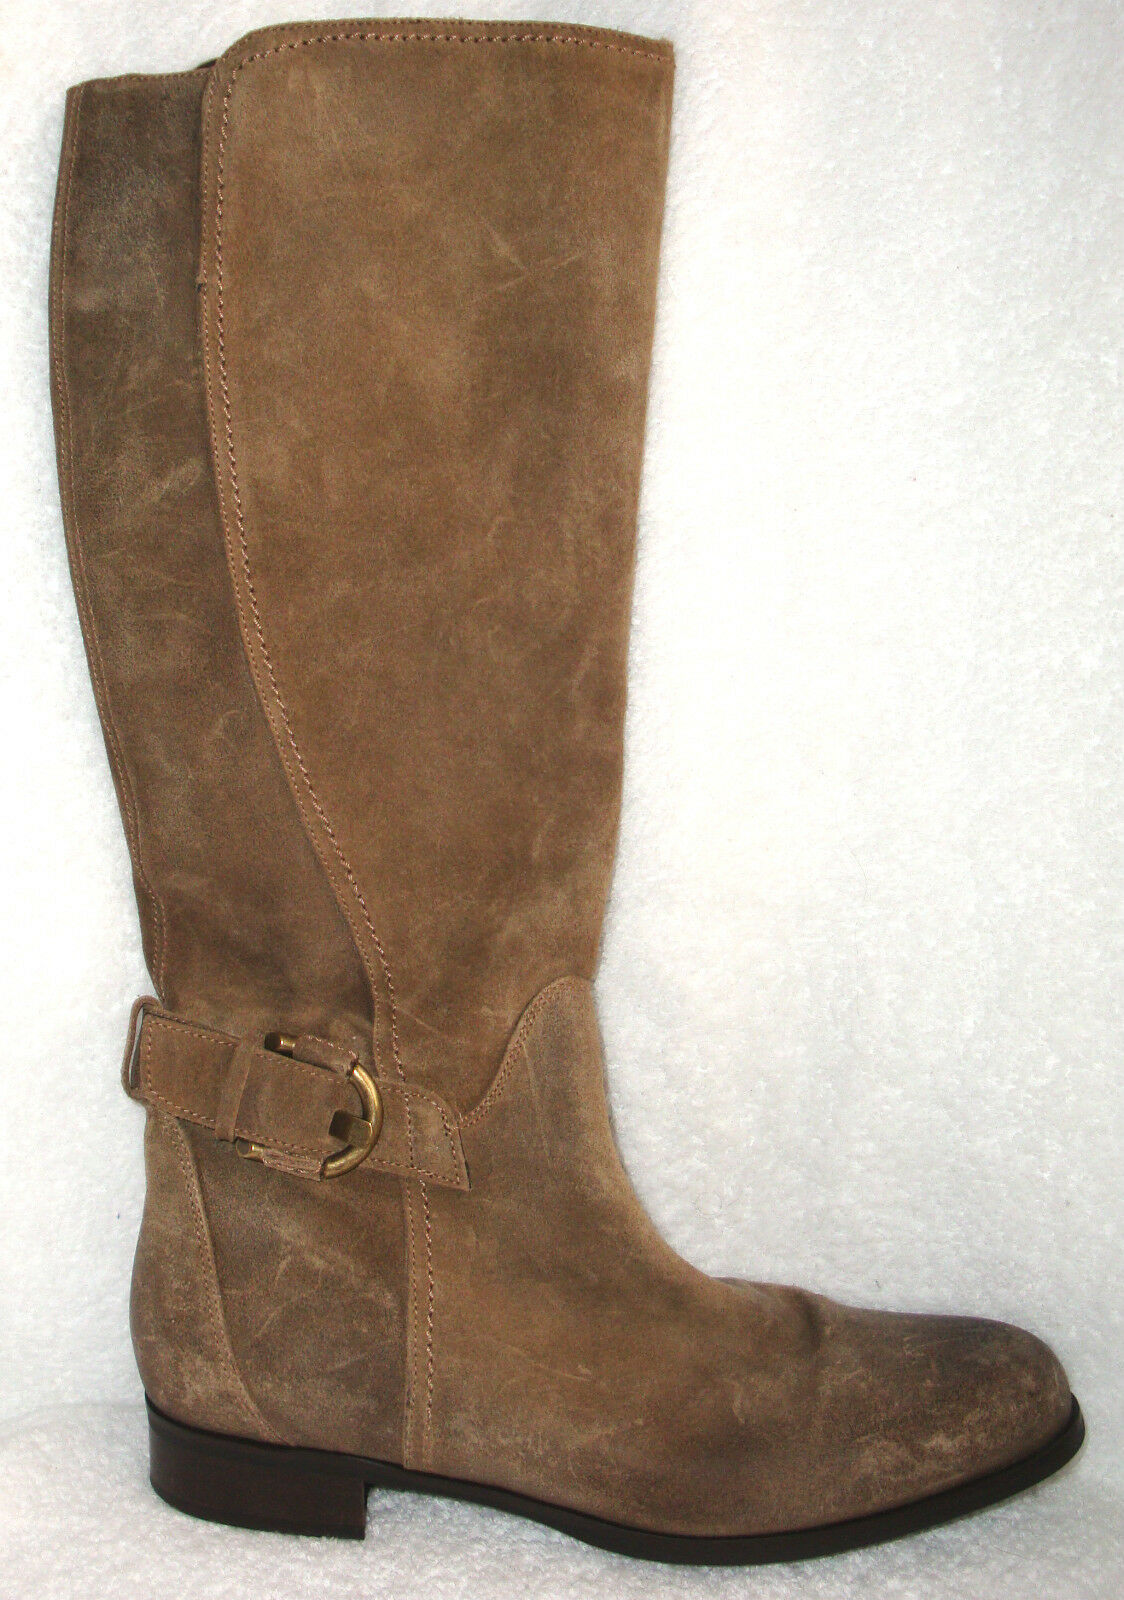 Cordani Taupe Suede Suede Leather Side Zip Tall Boots Italy 40